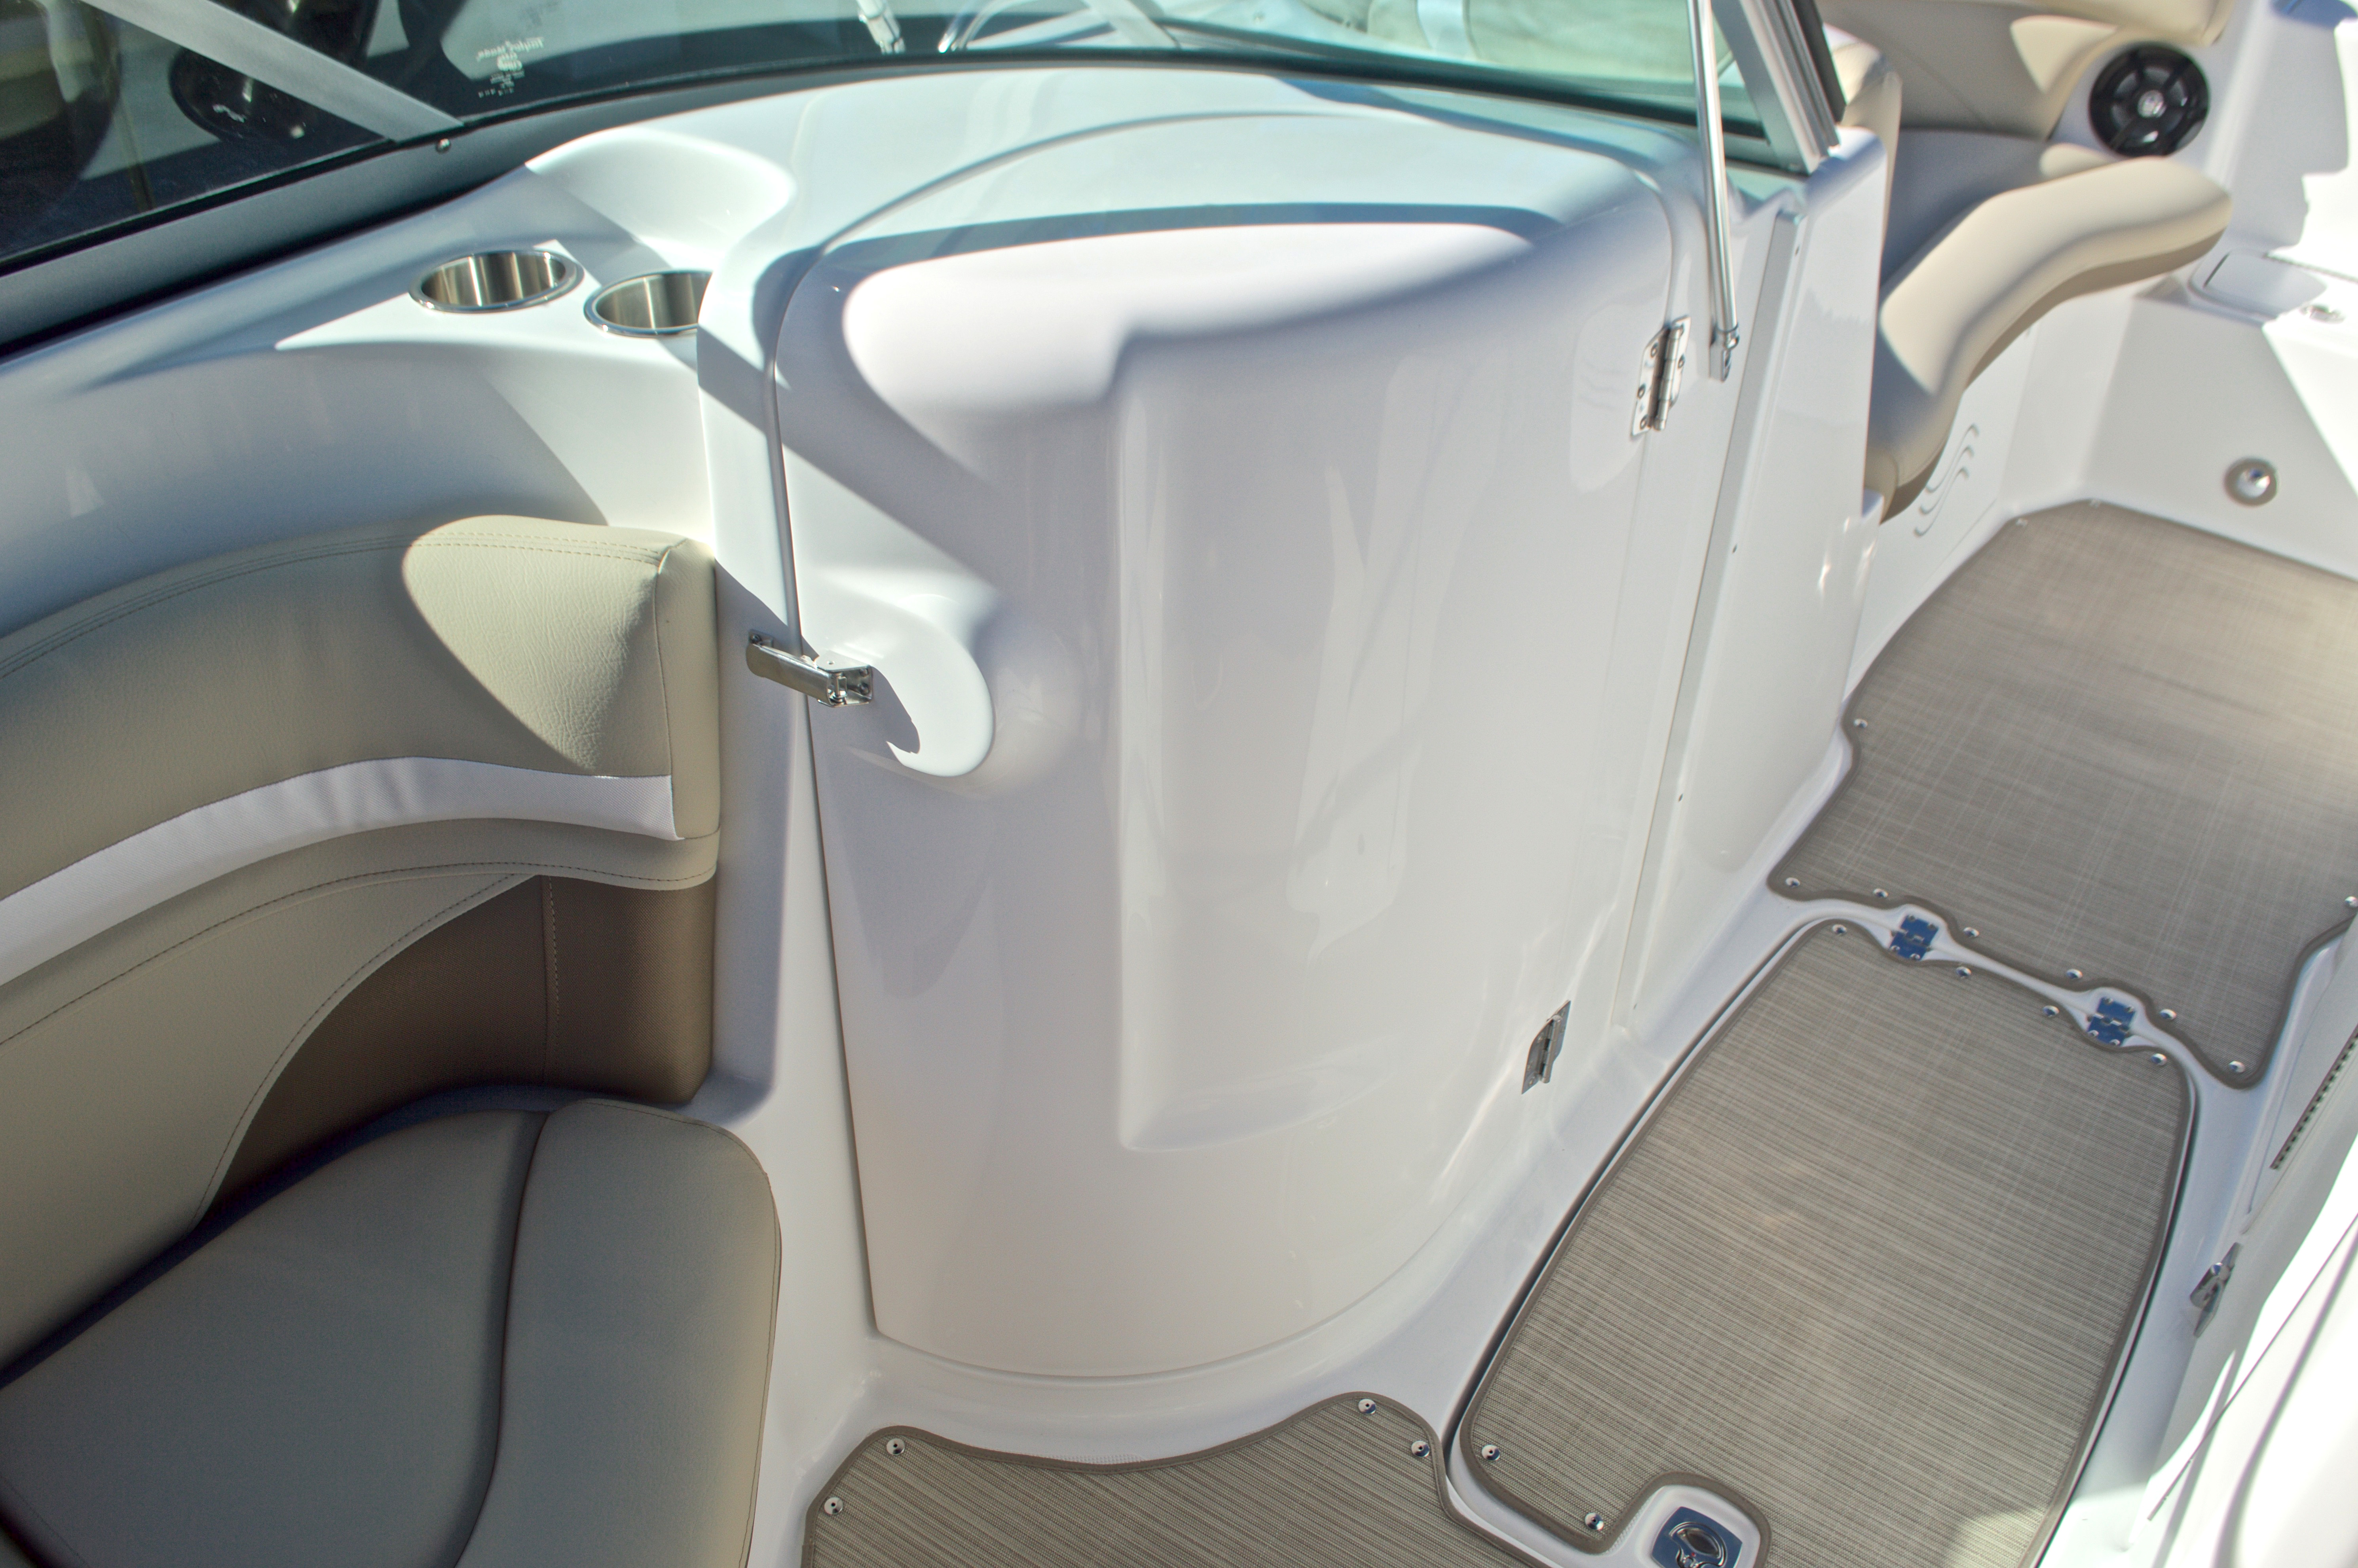 Thumbnail 25 for New 2017 Hurricane SunDeck SD 2200 OB boat for sale in West Palm Beach, FL